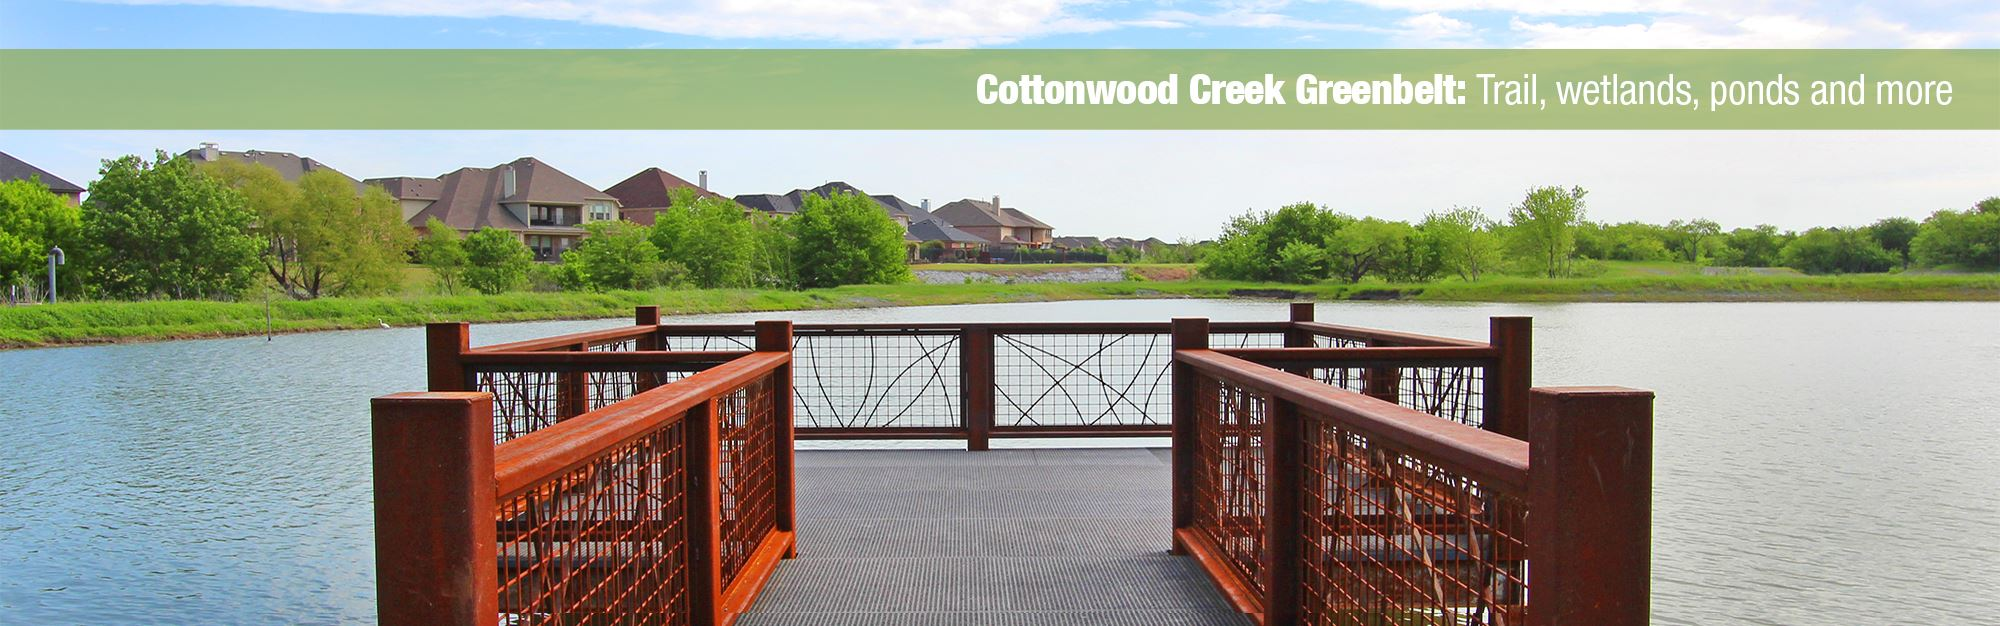 Cottonwood Creek Greenbelt:  Trail, wetlands, ponds and more